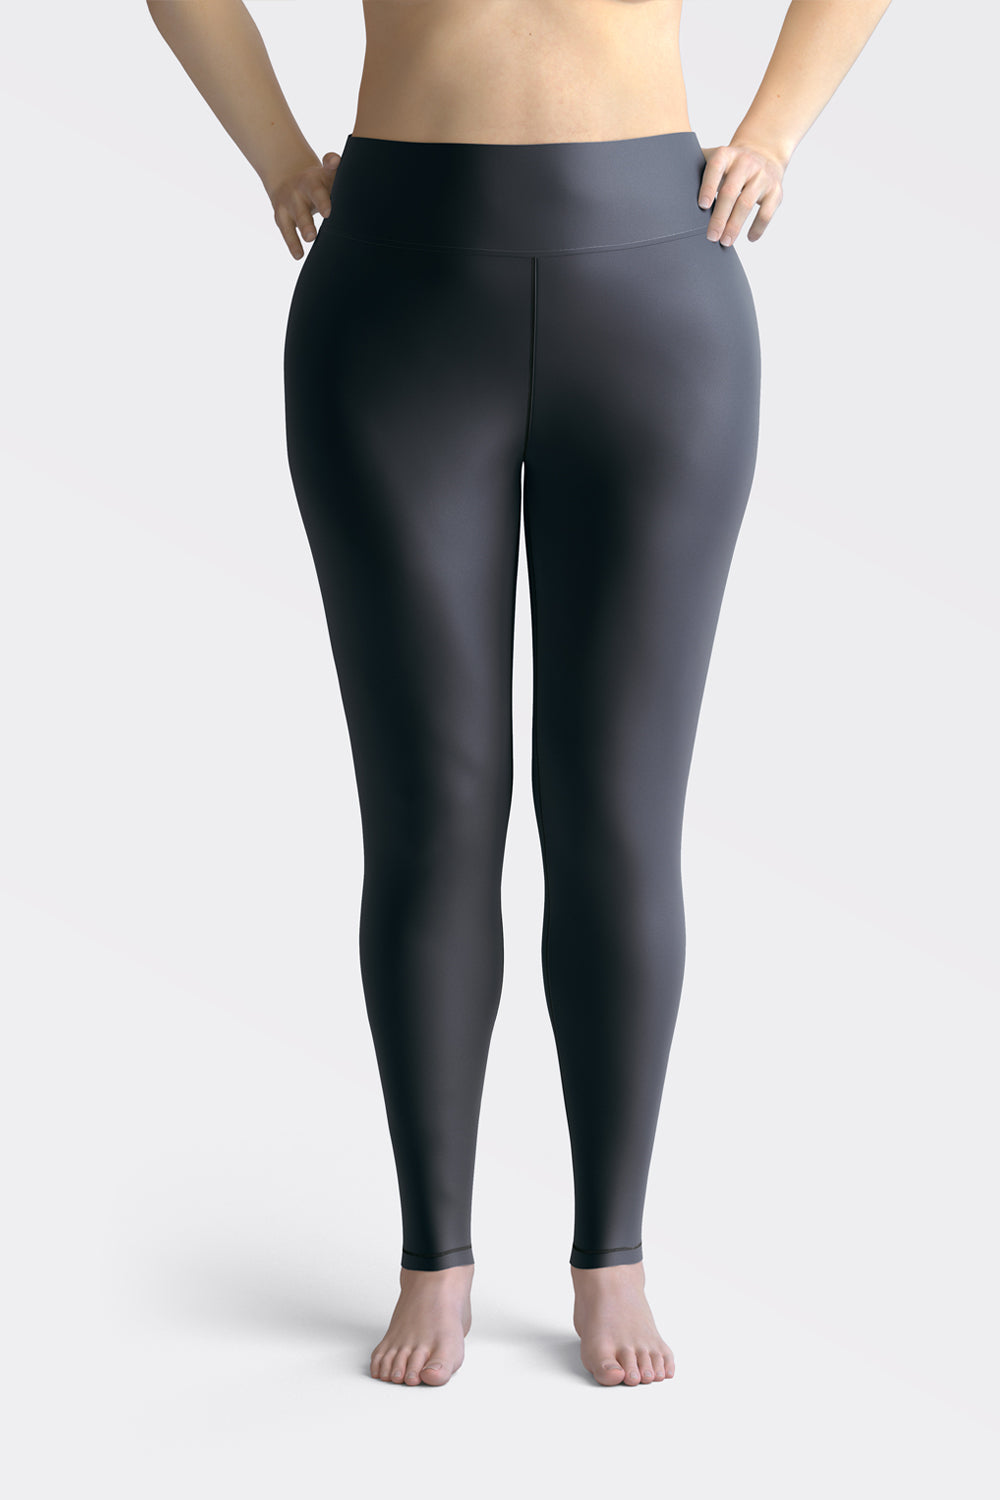 Navy Blue Super Curvy Leggings